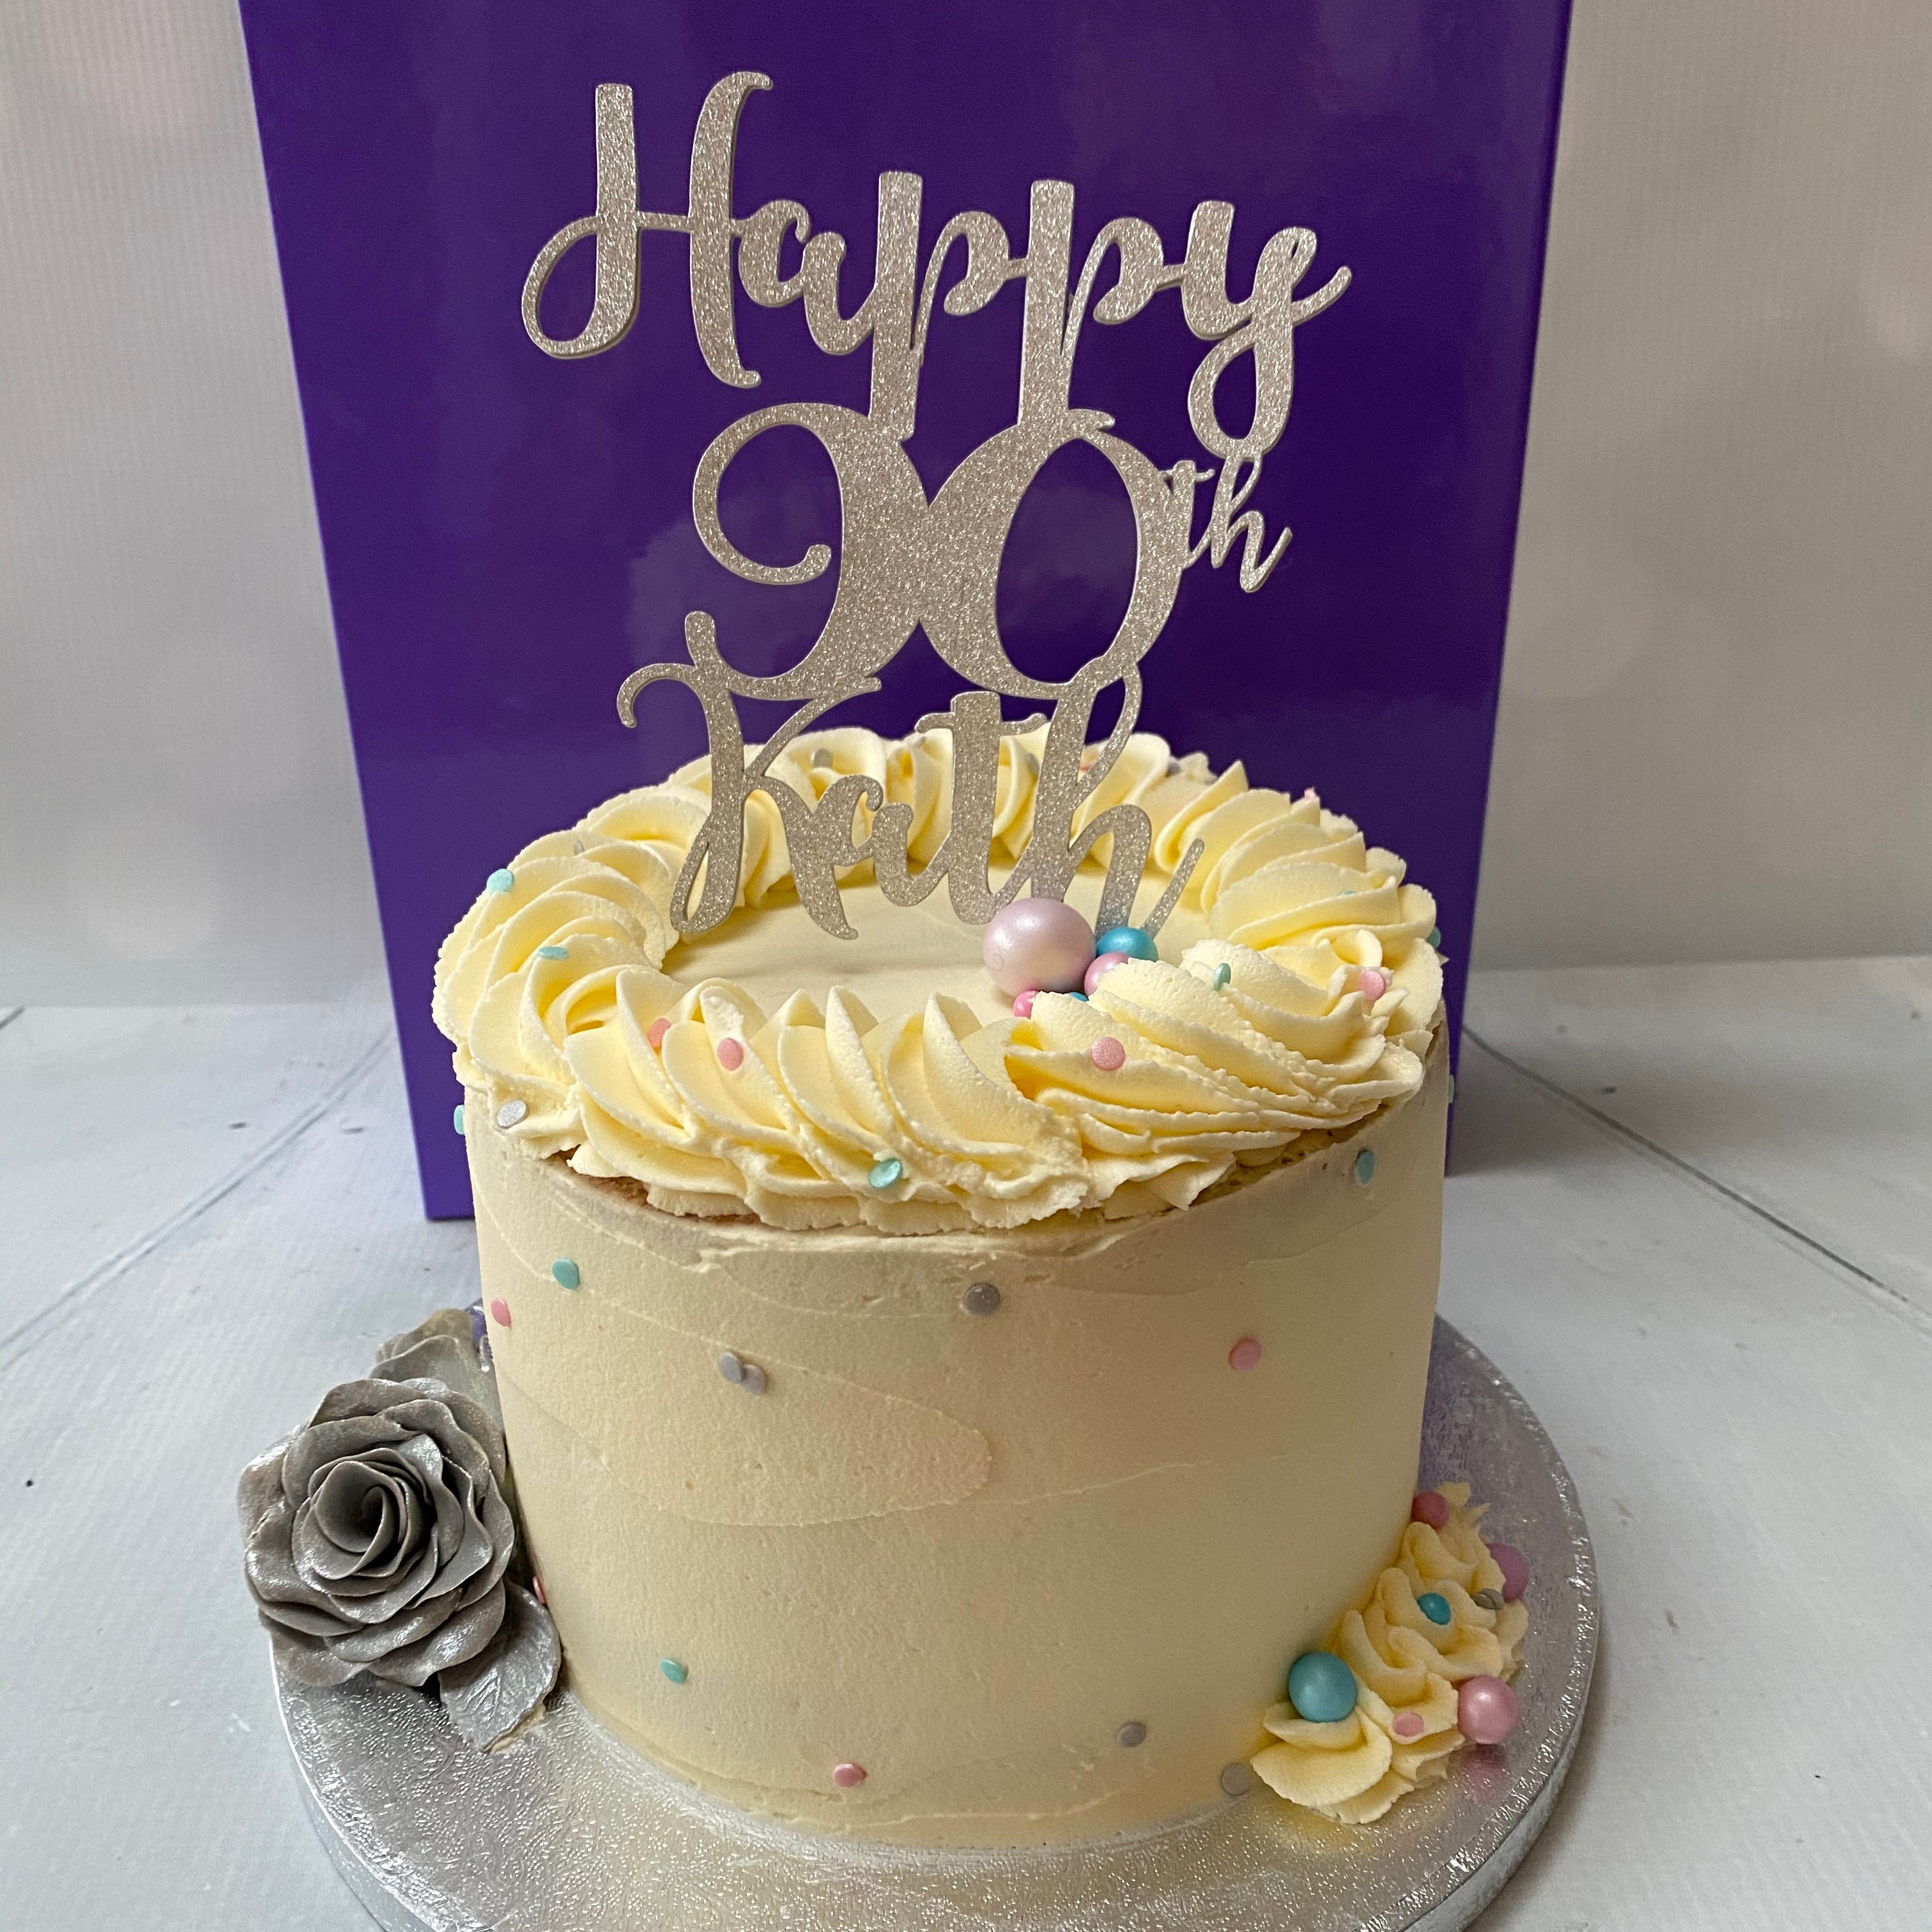 Silver theme buttercream cake